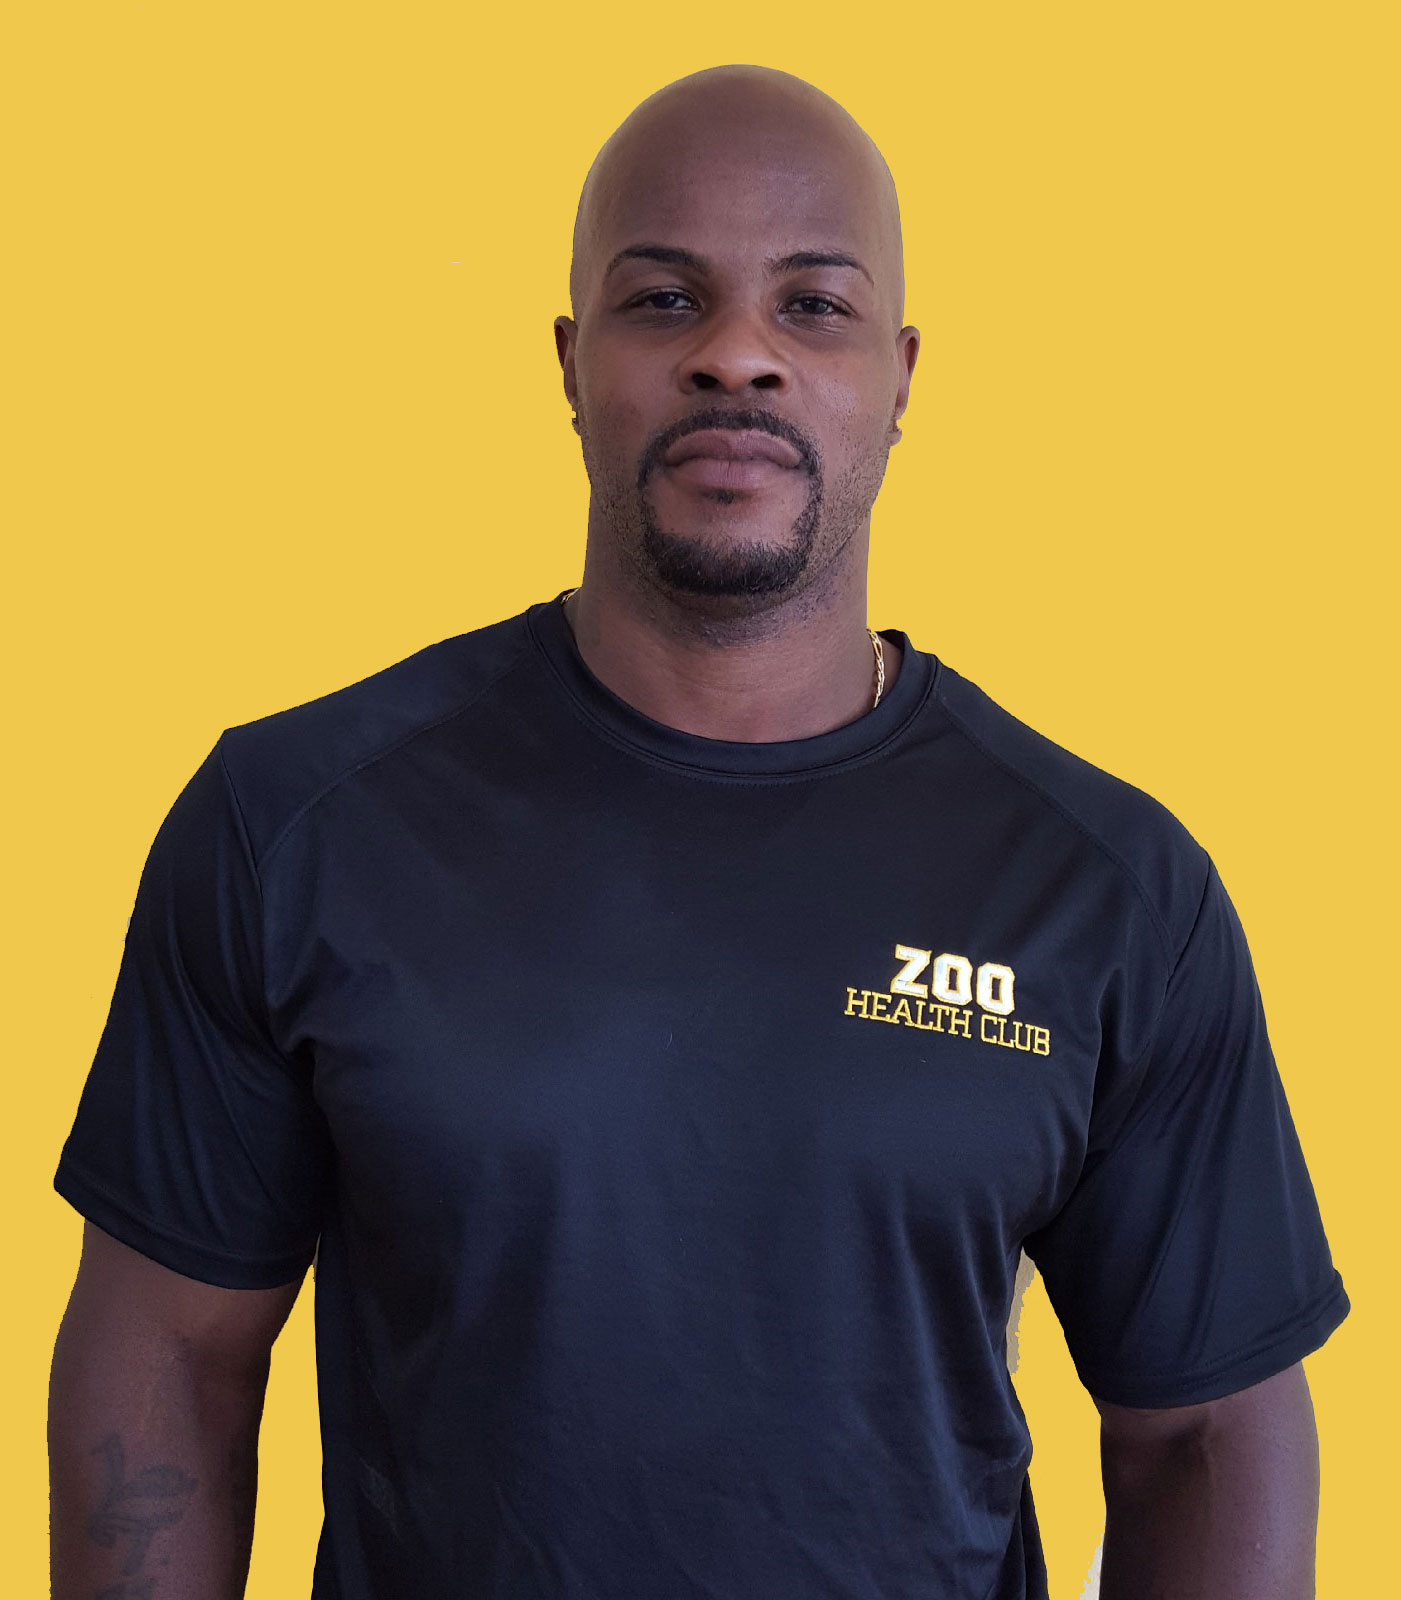 zoo gym fitness franchise opportunity andrew